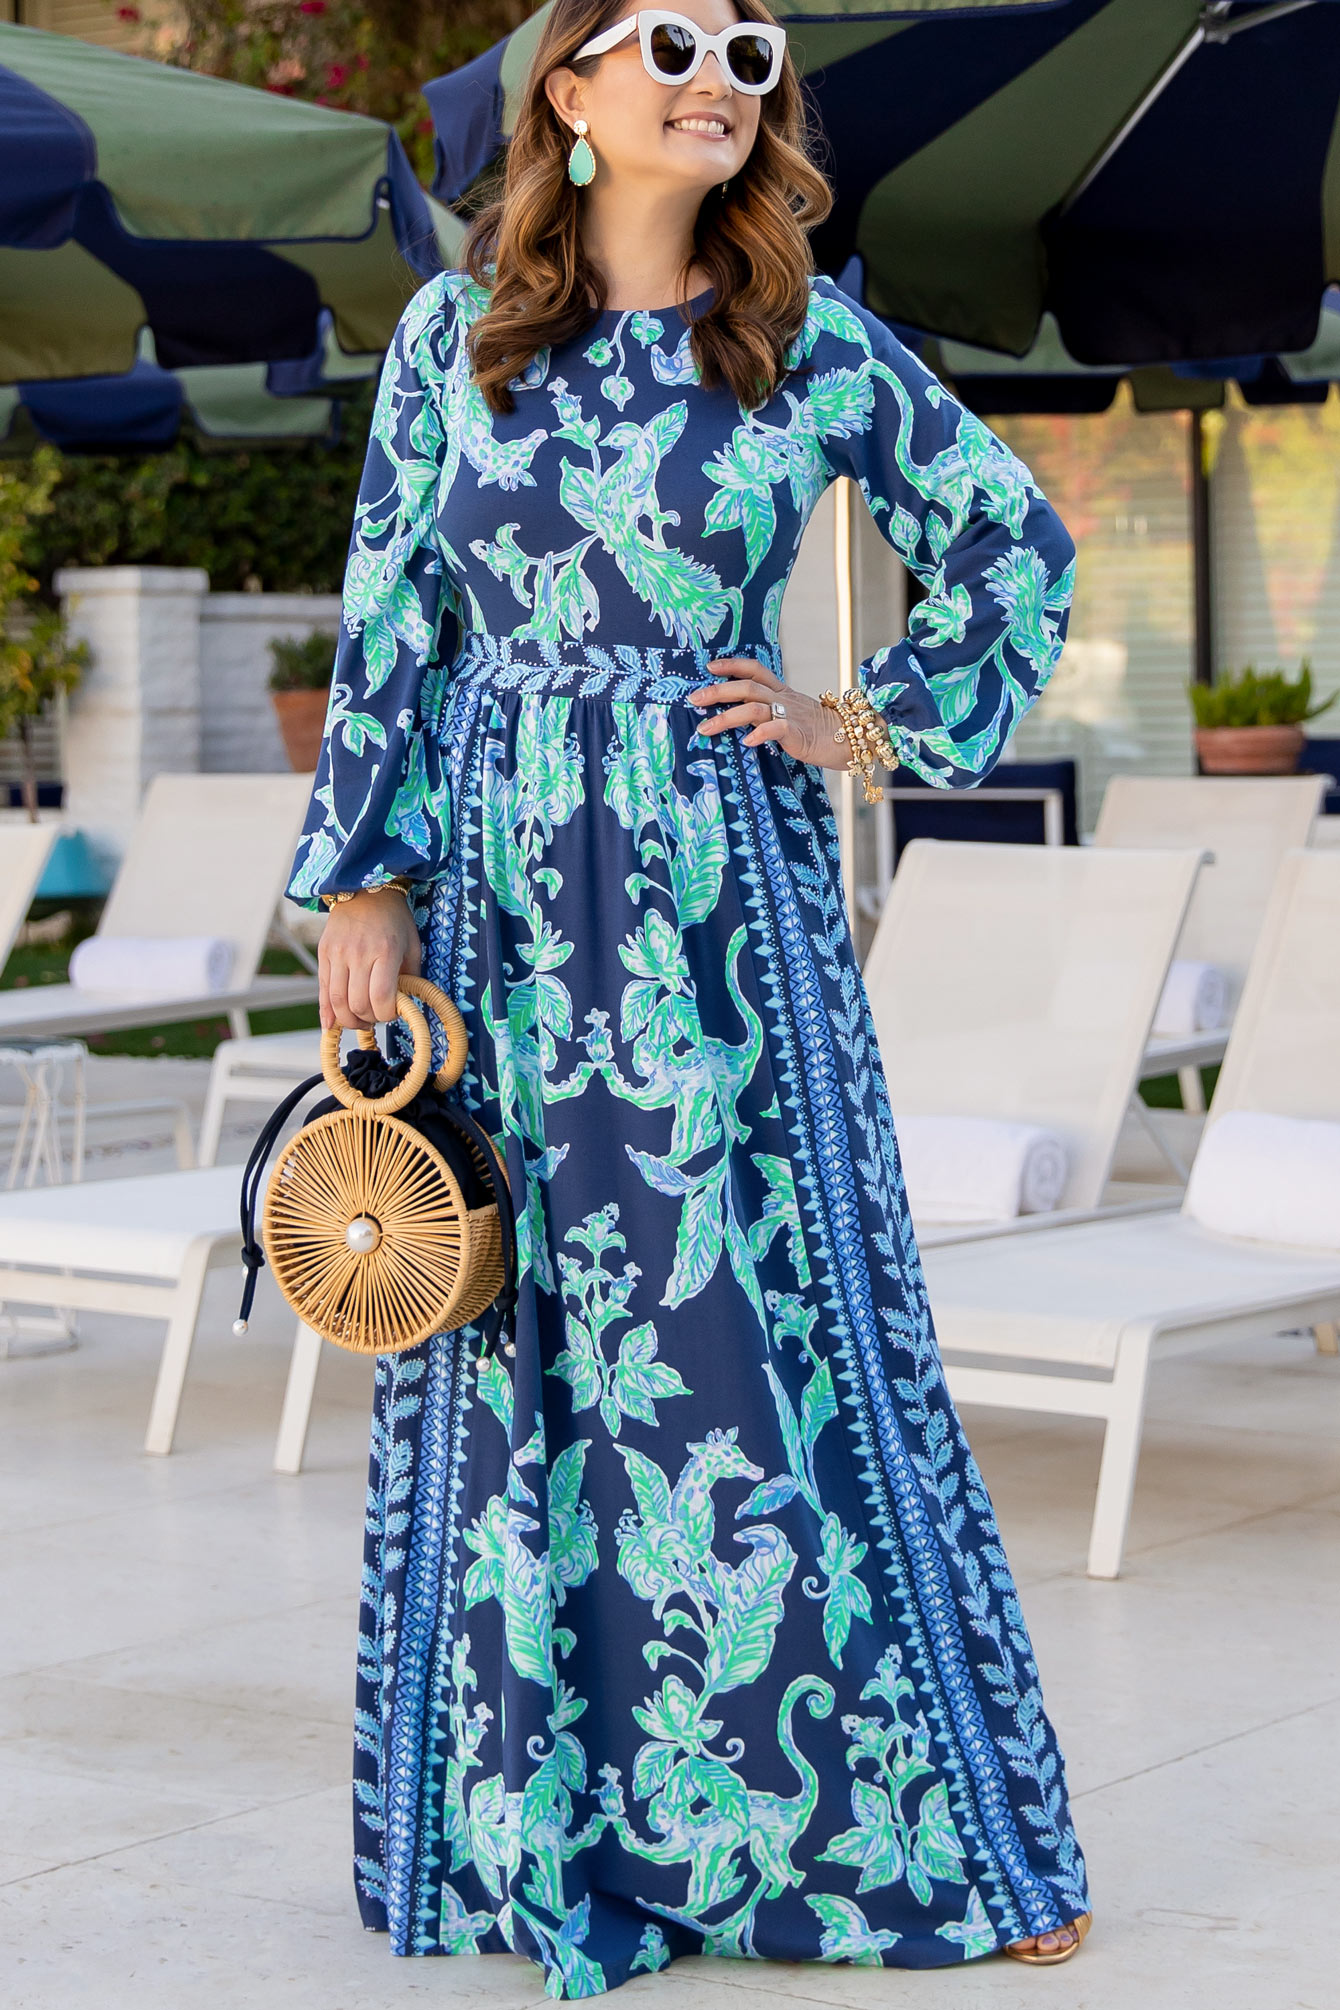 Jennifer Lake Lilly Pulitzer Blue Turquoise Maxi Dress